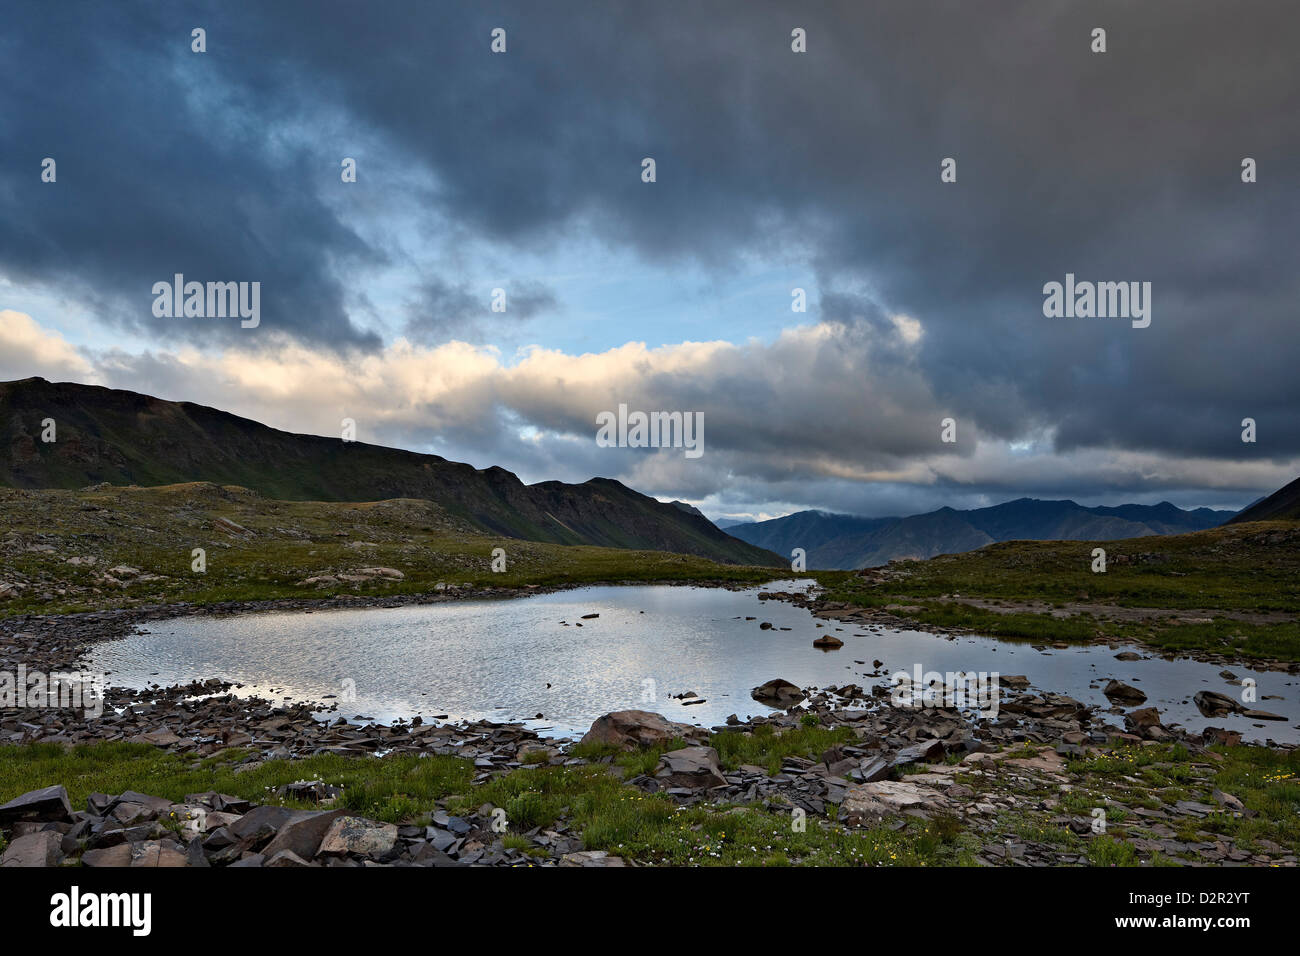 Cloudy sky above an Alpine tarn, San Juan National Forest, Colorado, United States of America, North America - Stock Image